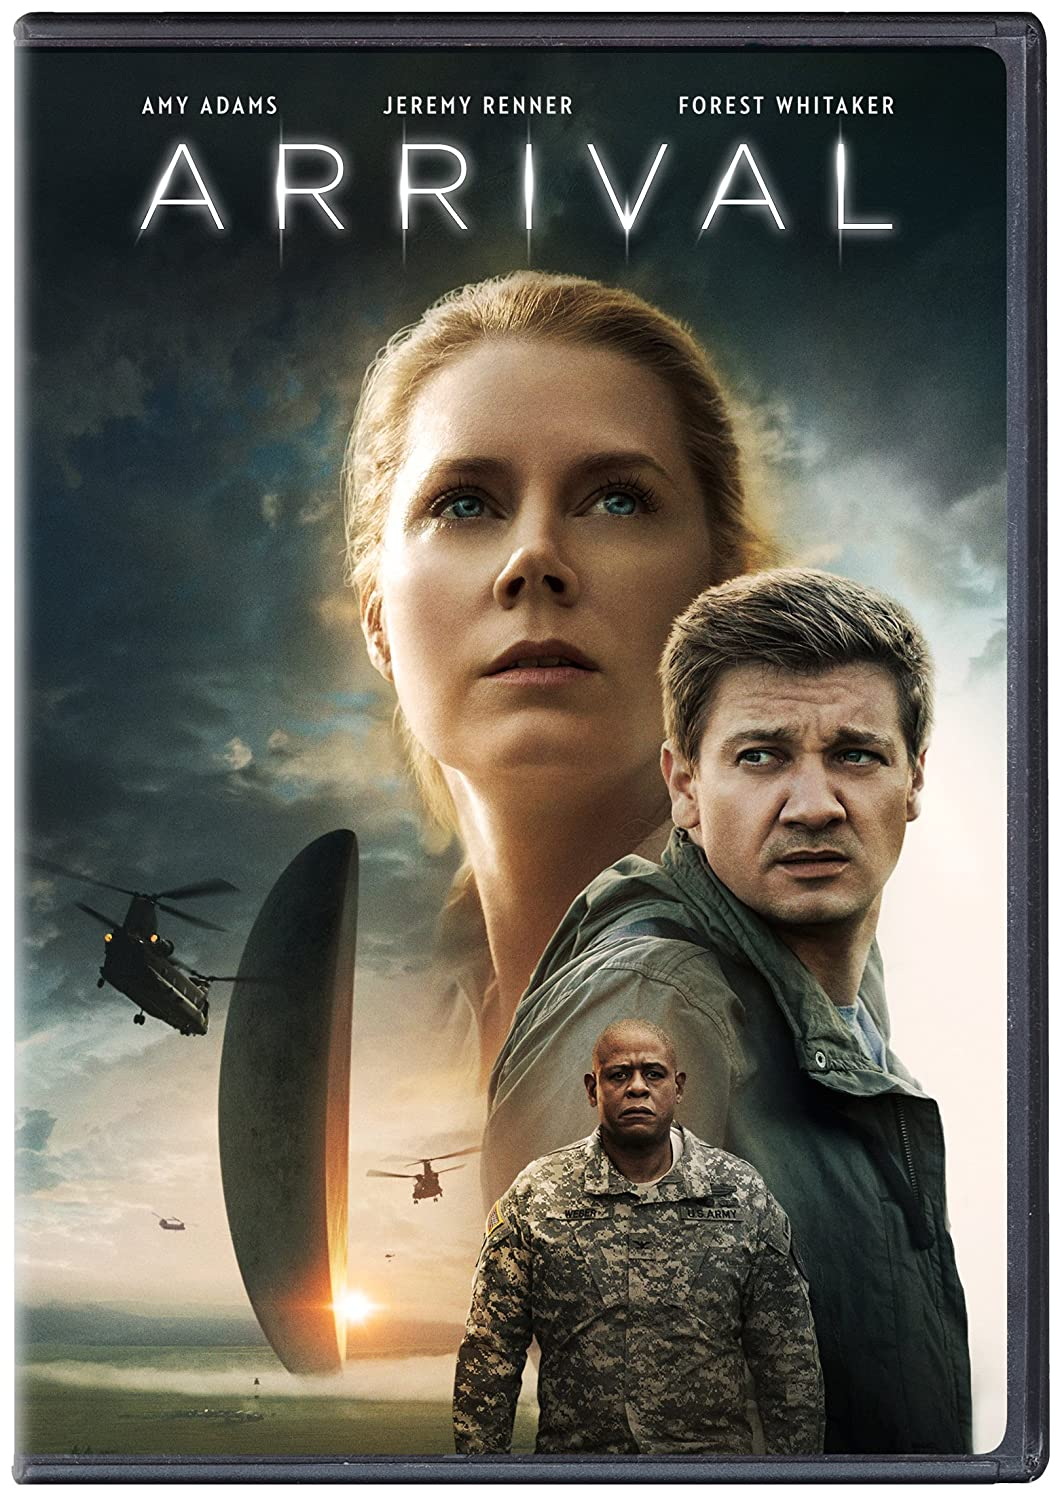 Amazon.com: Arrival: Amy Adams, Jeremy Renner, Forest Whitaker ...